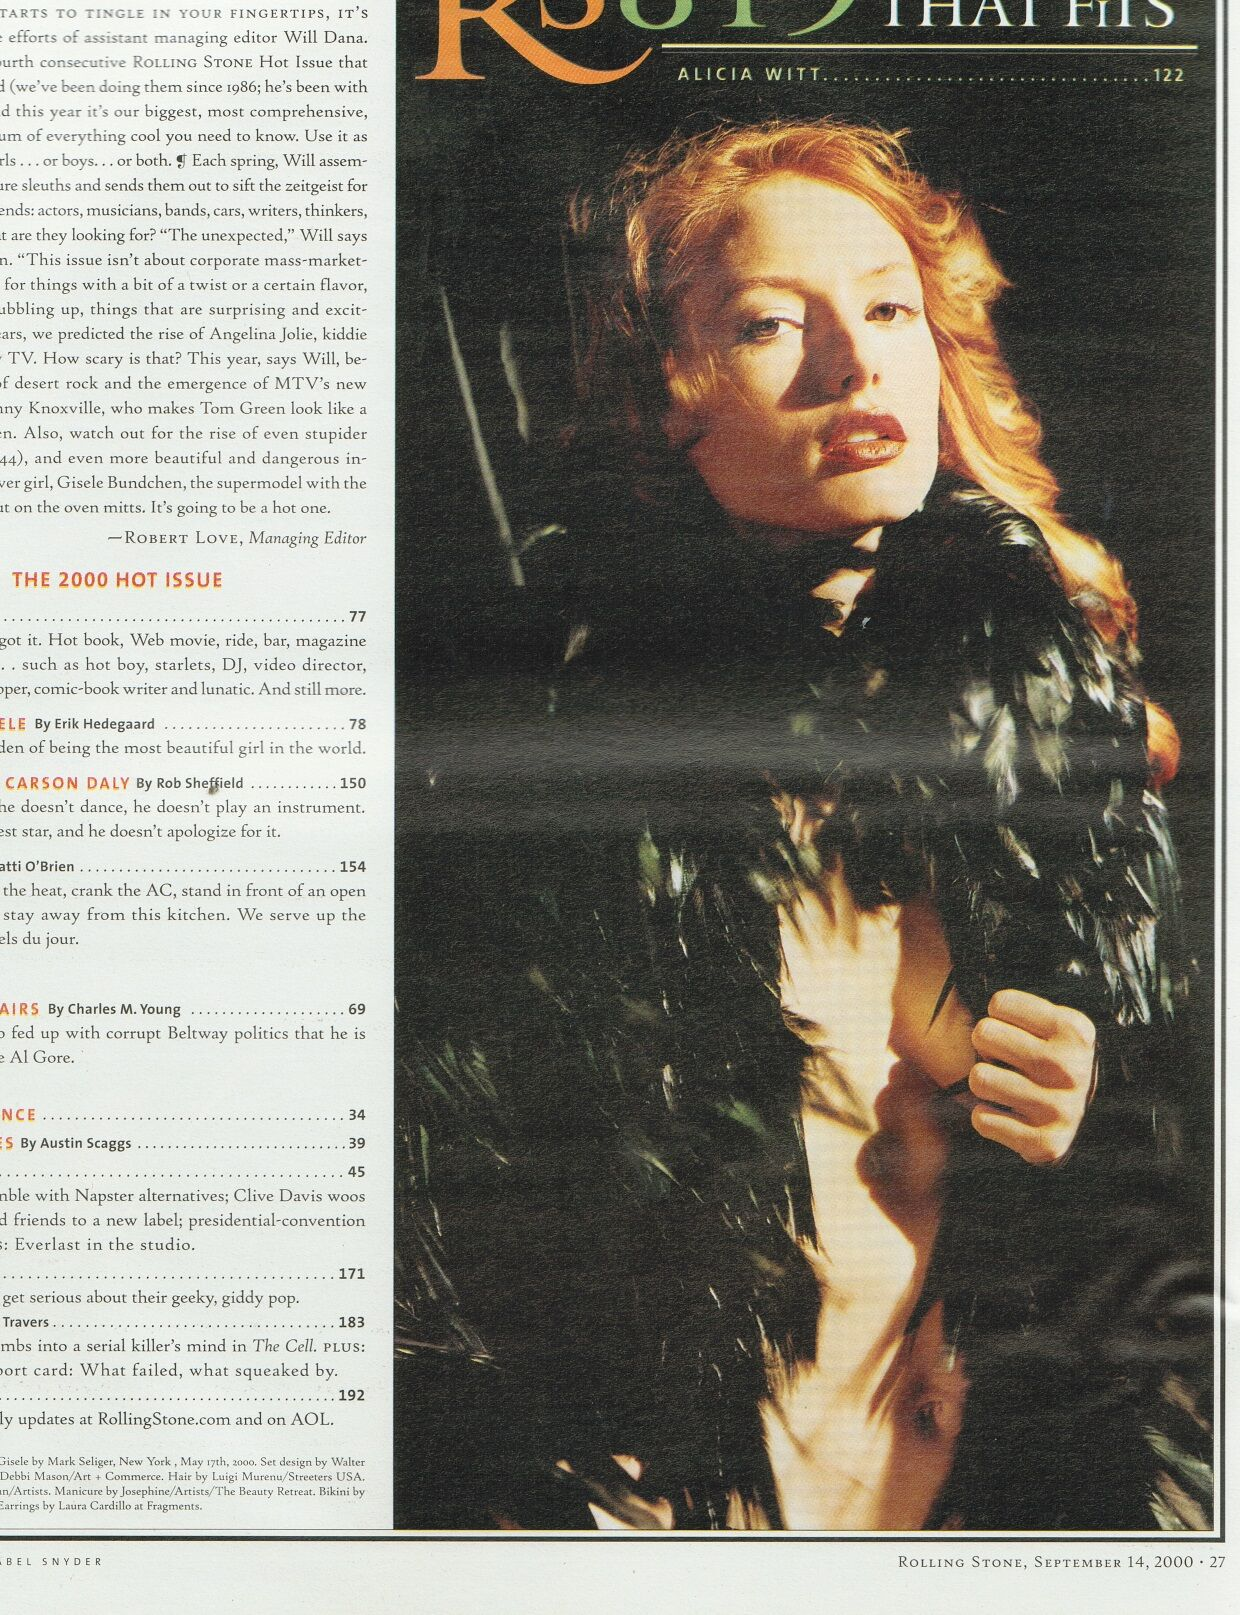 RollingStone - Sept 2000_preview-2-min.jpg